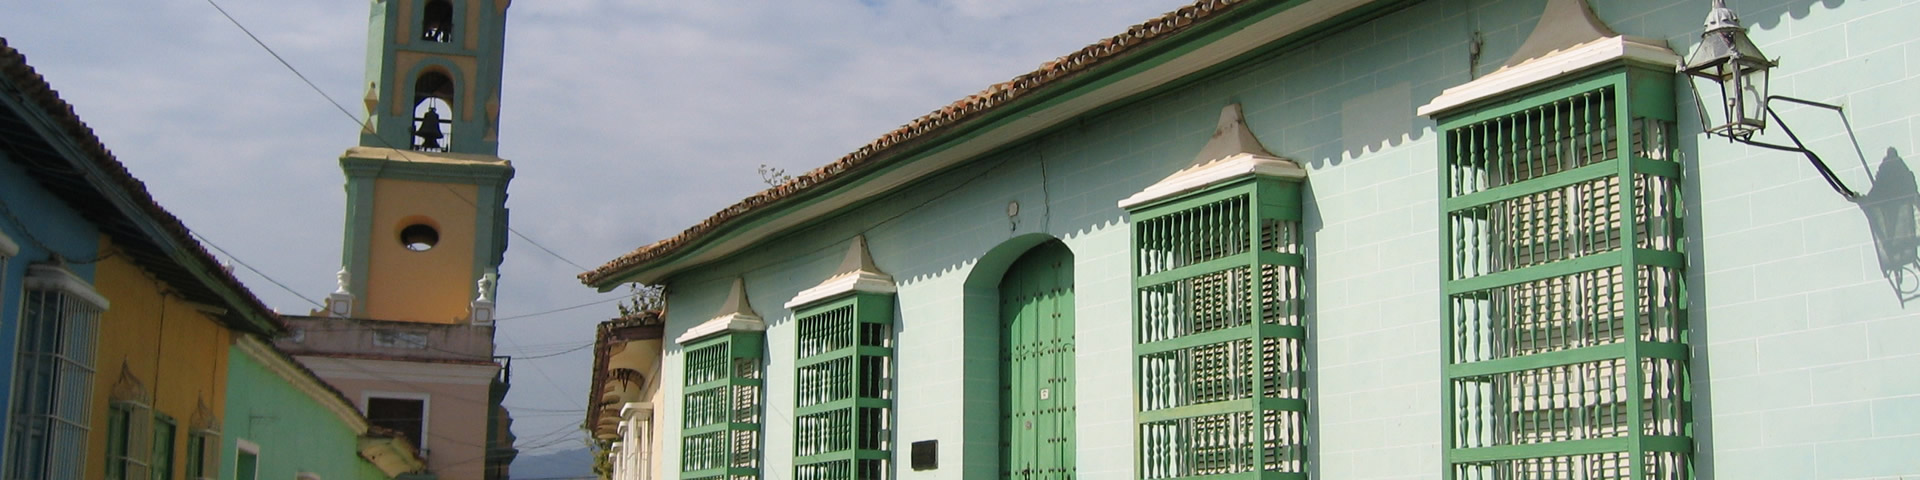 House with green shutters